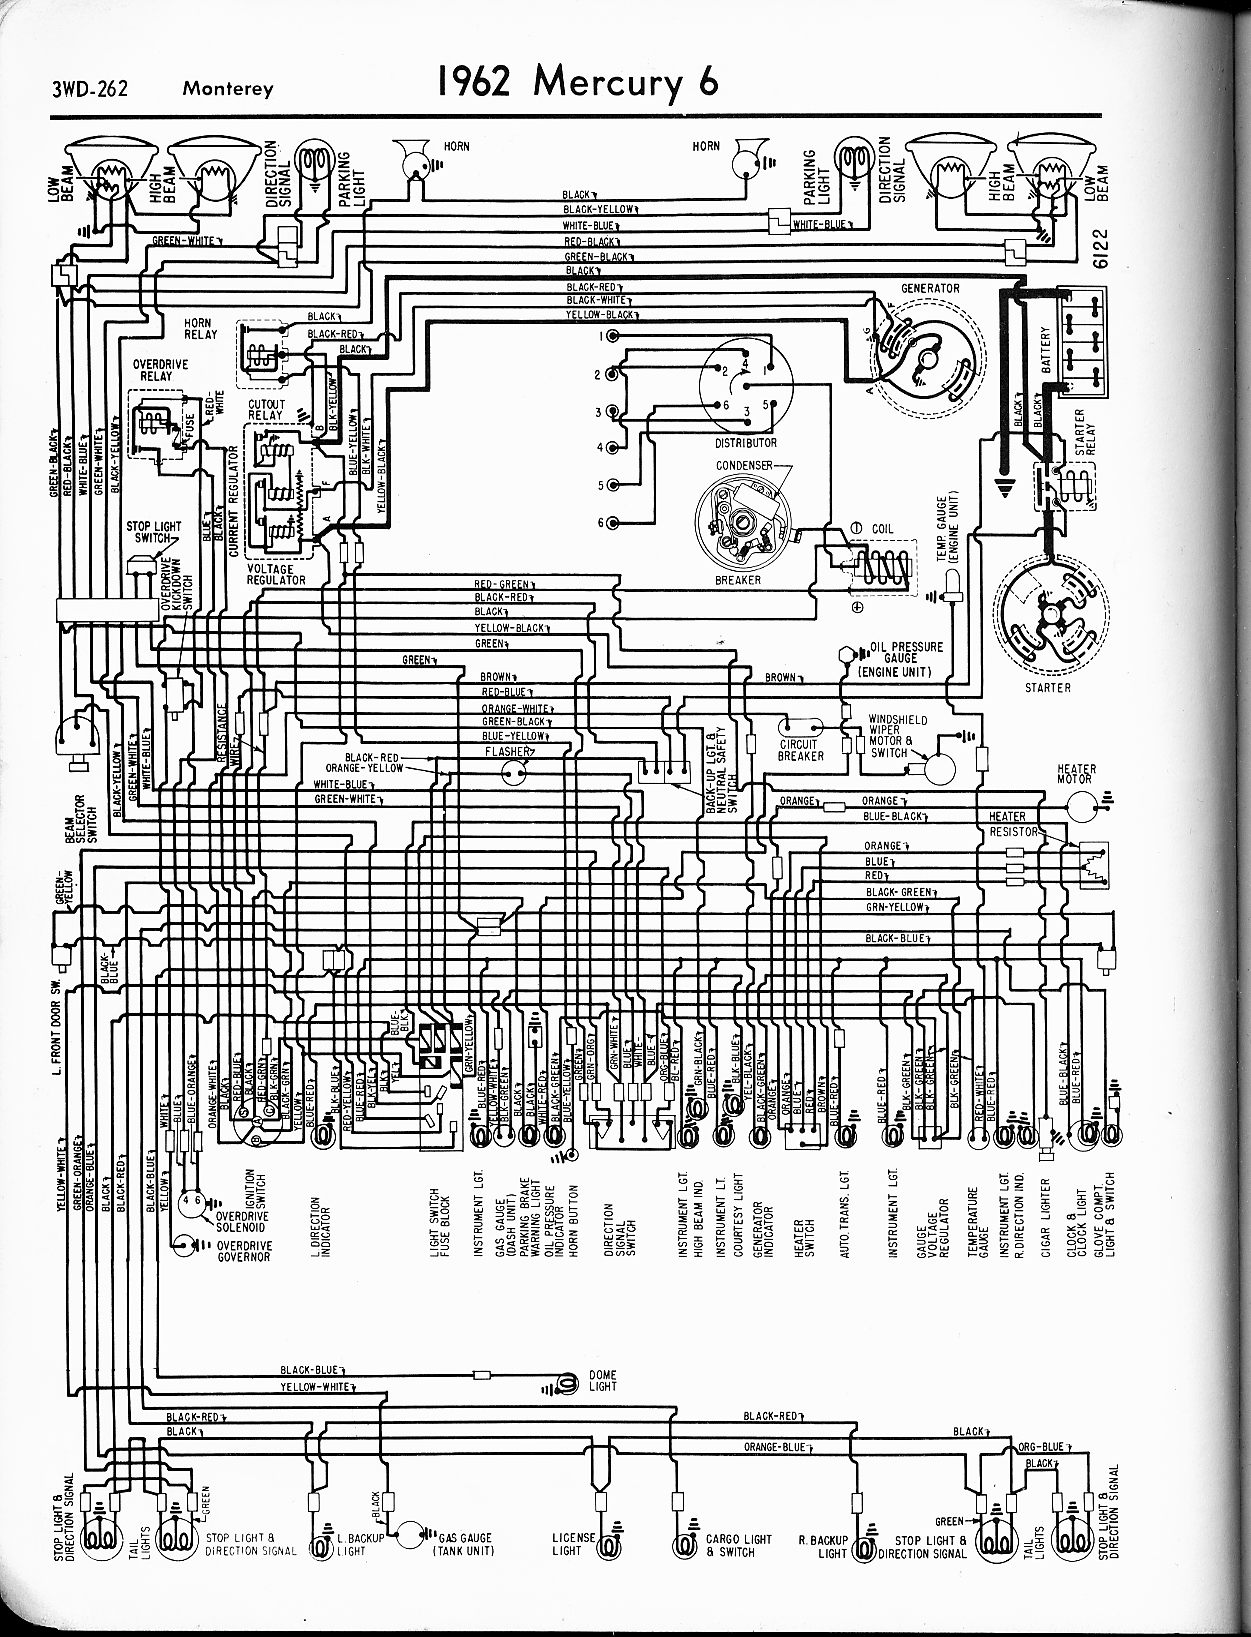 1962 Ford Fuse Block Diagram Another Blog About Wiring 1972 Mercedes Panel Mercury Diagrams The Old Car Manual Project Rh Oldcarmanualproject Com